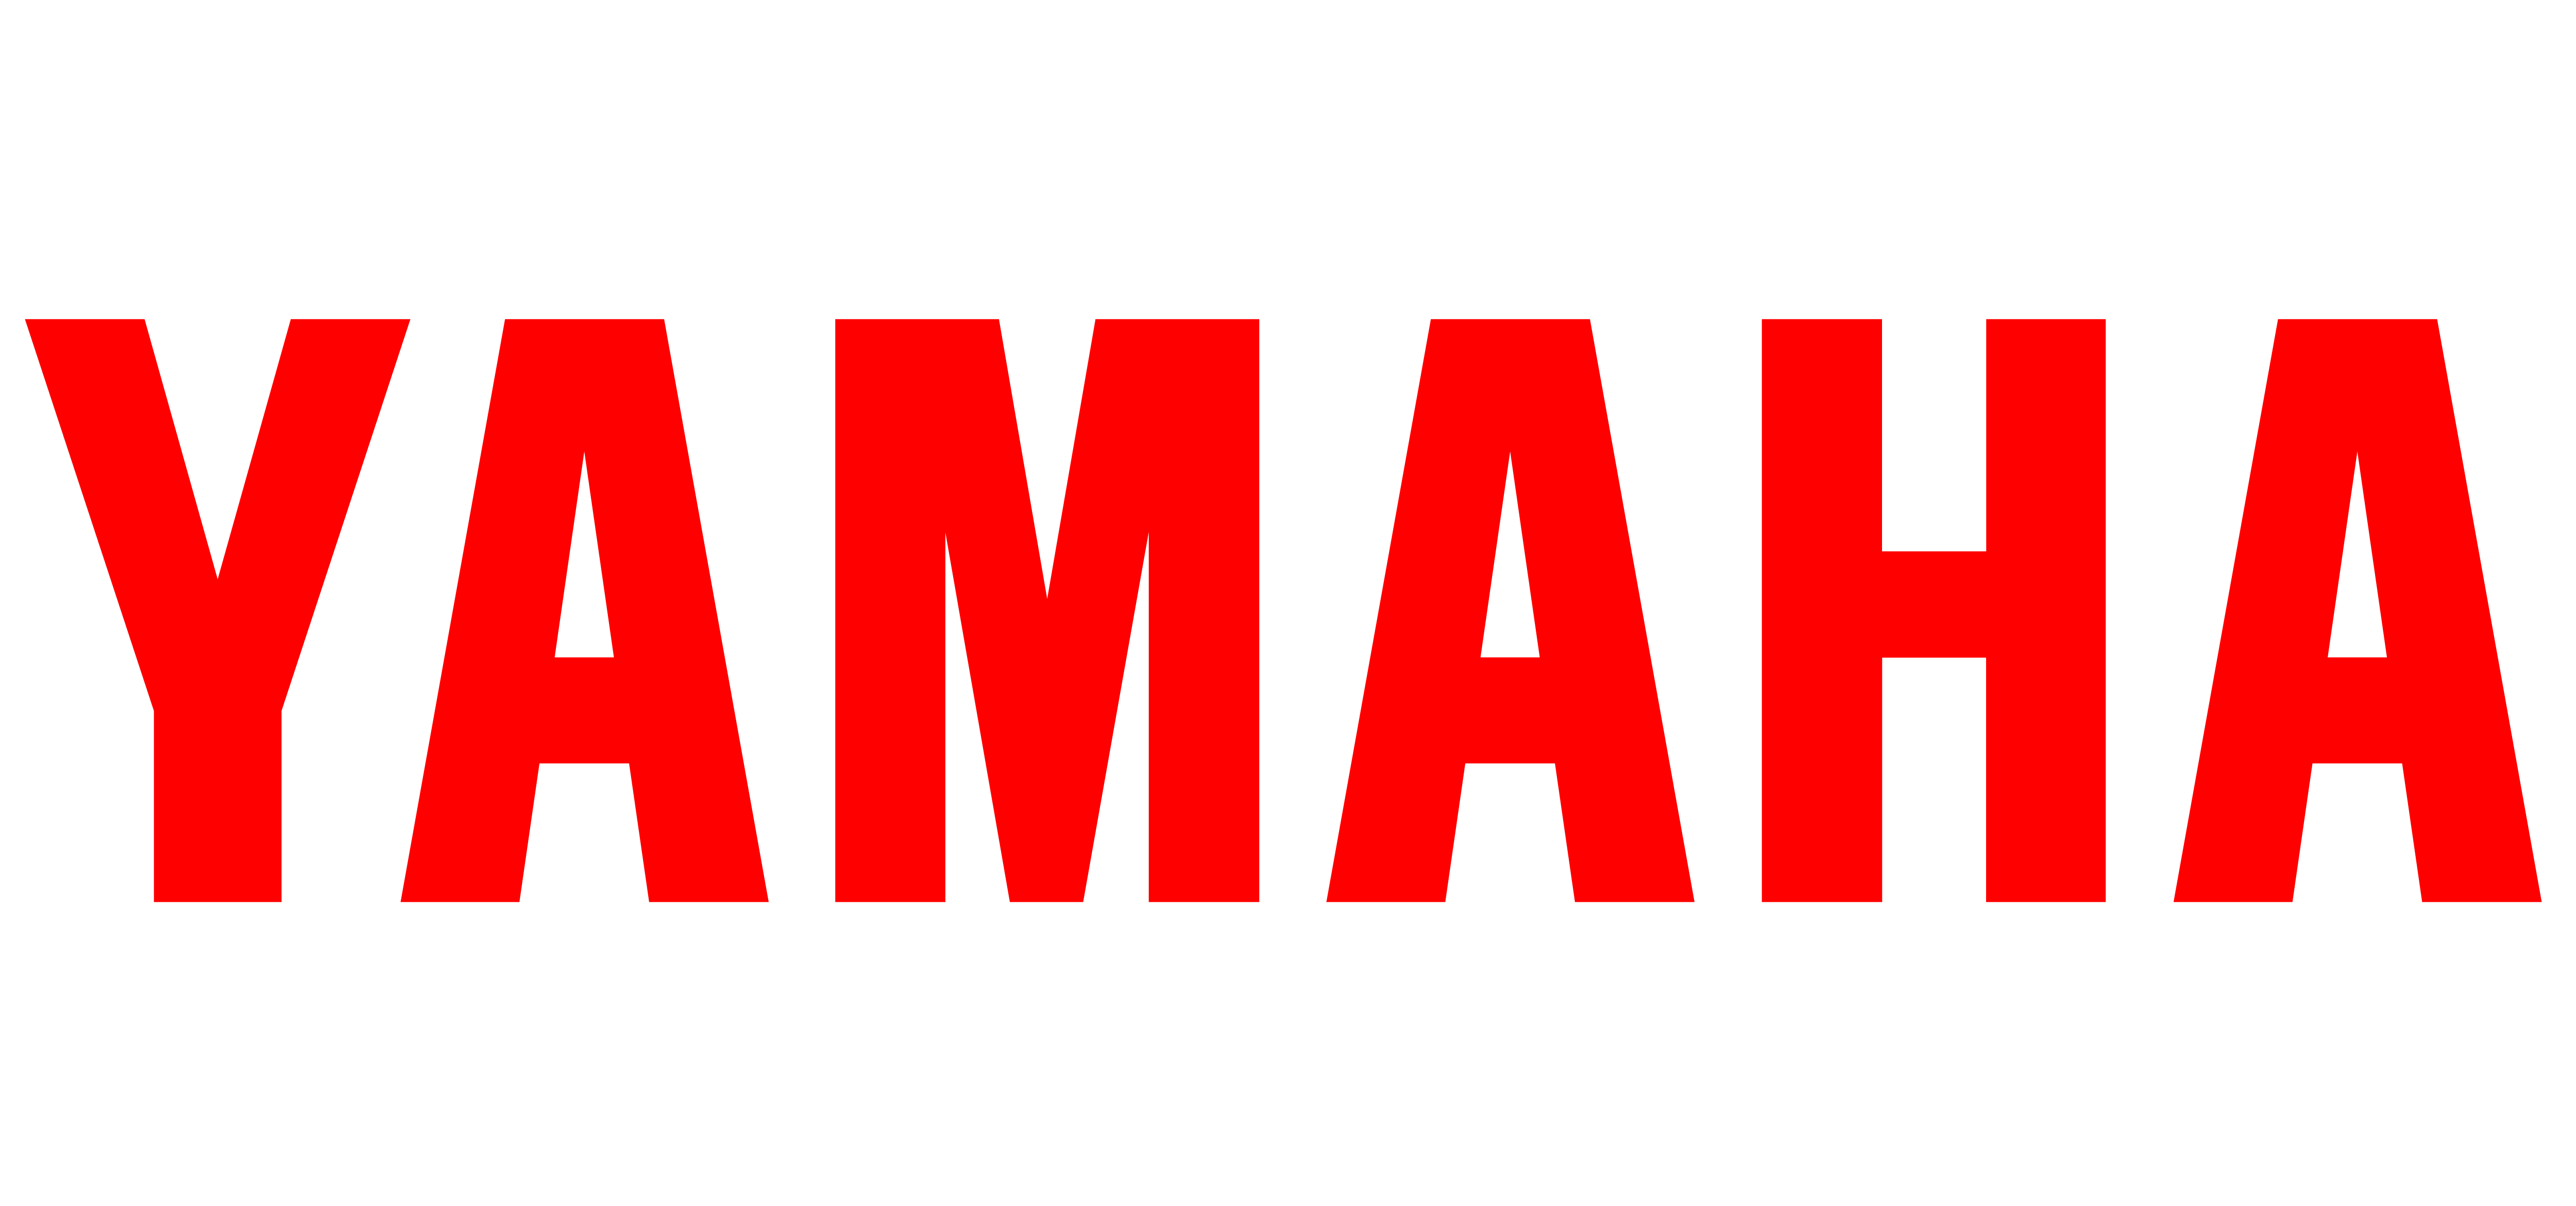 Yamaha logo history meaning. Motorcycle clipart meter